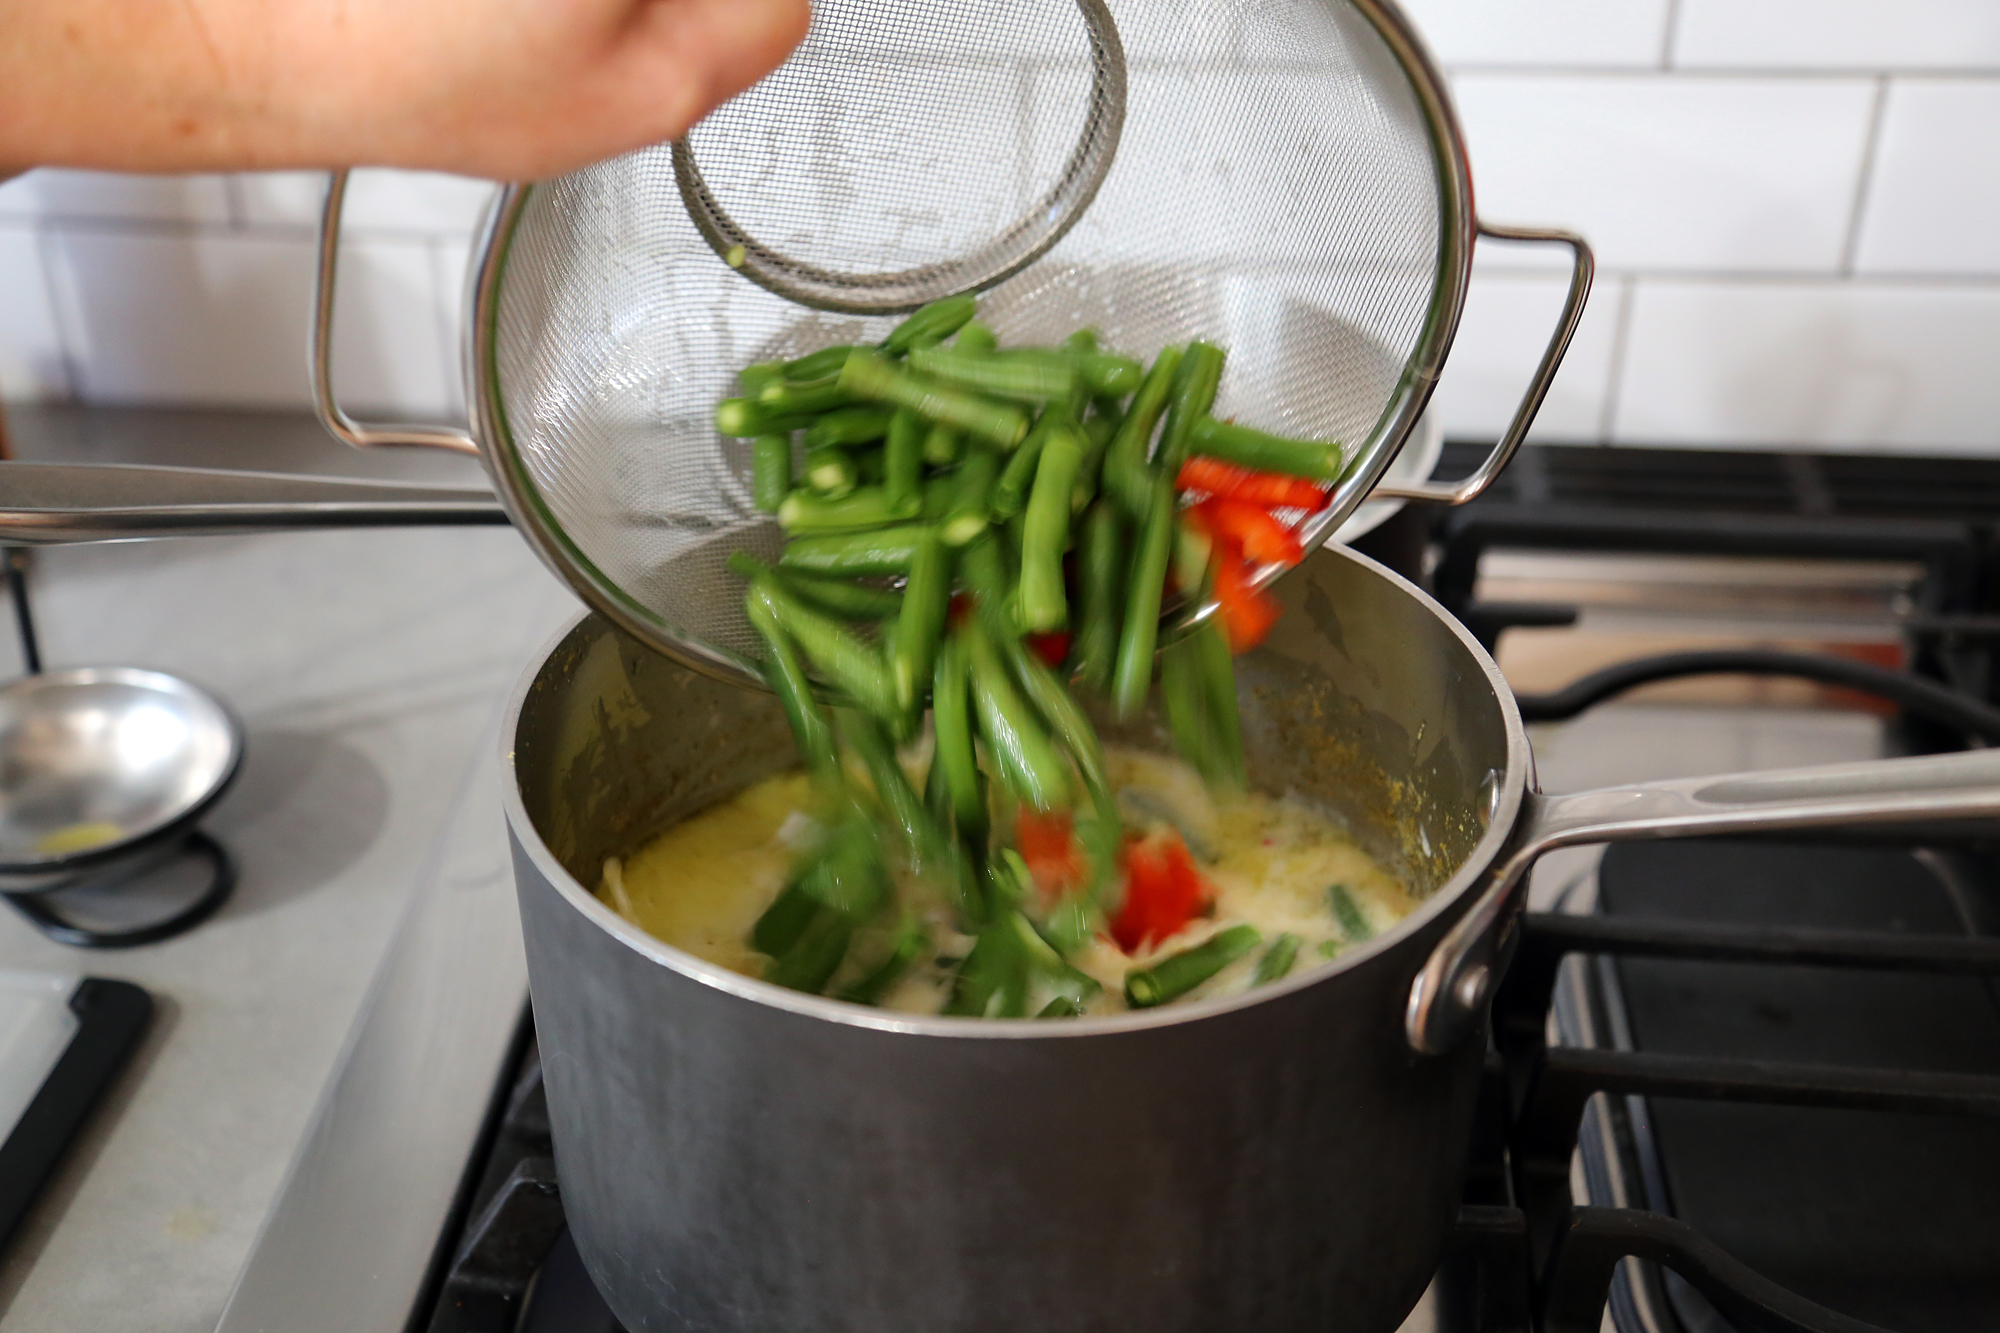 Add the coconut milk, green beans, bell pepper, and green onions to the saucepan.